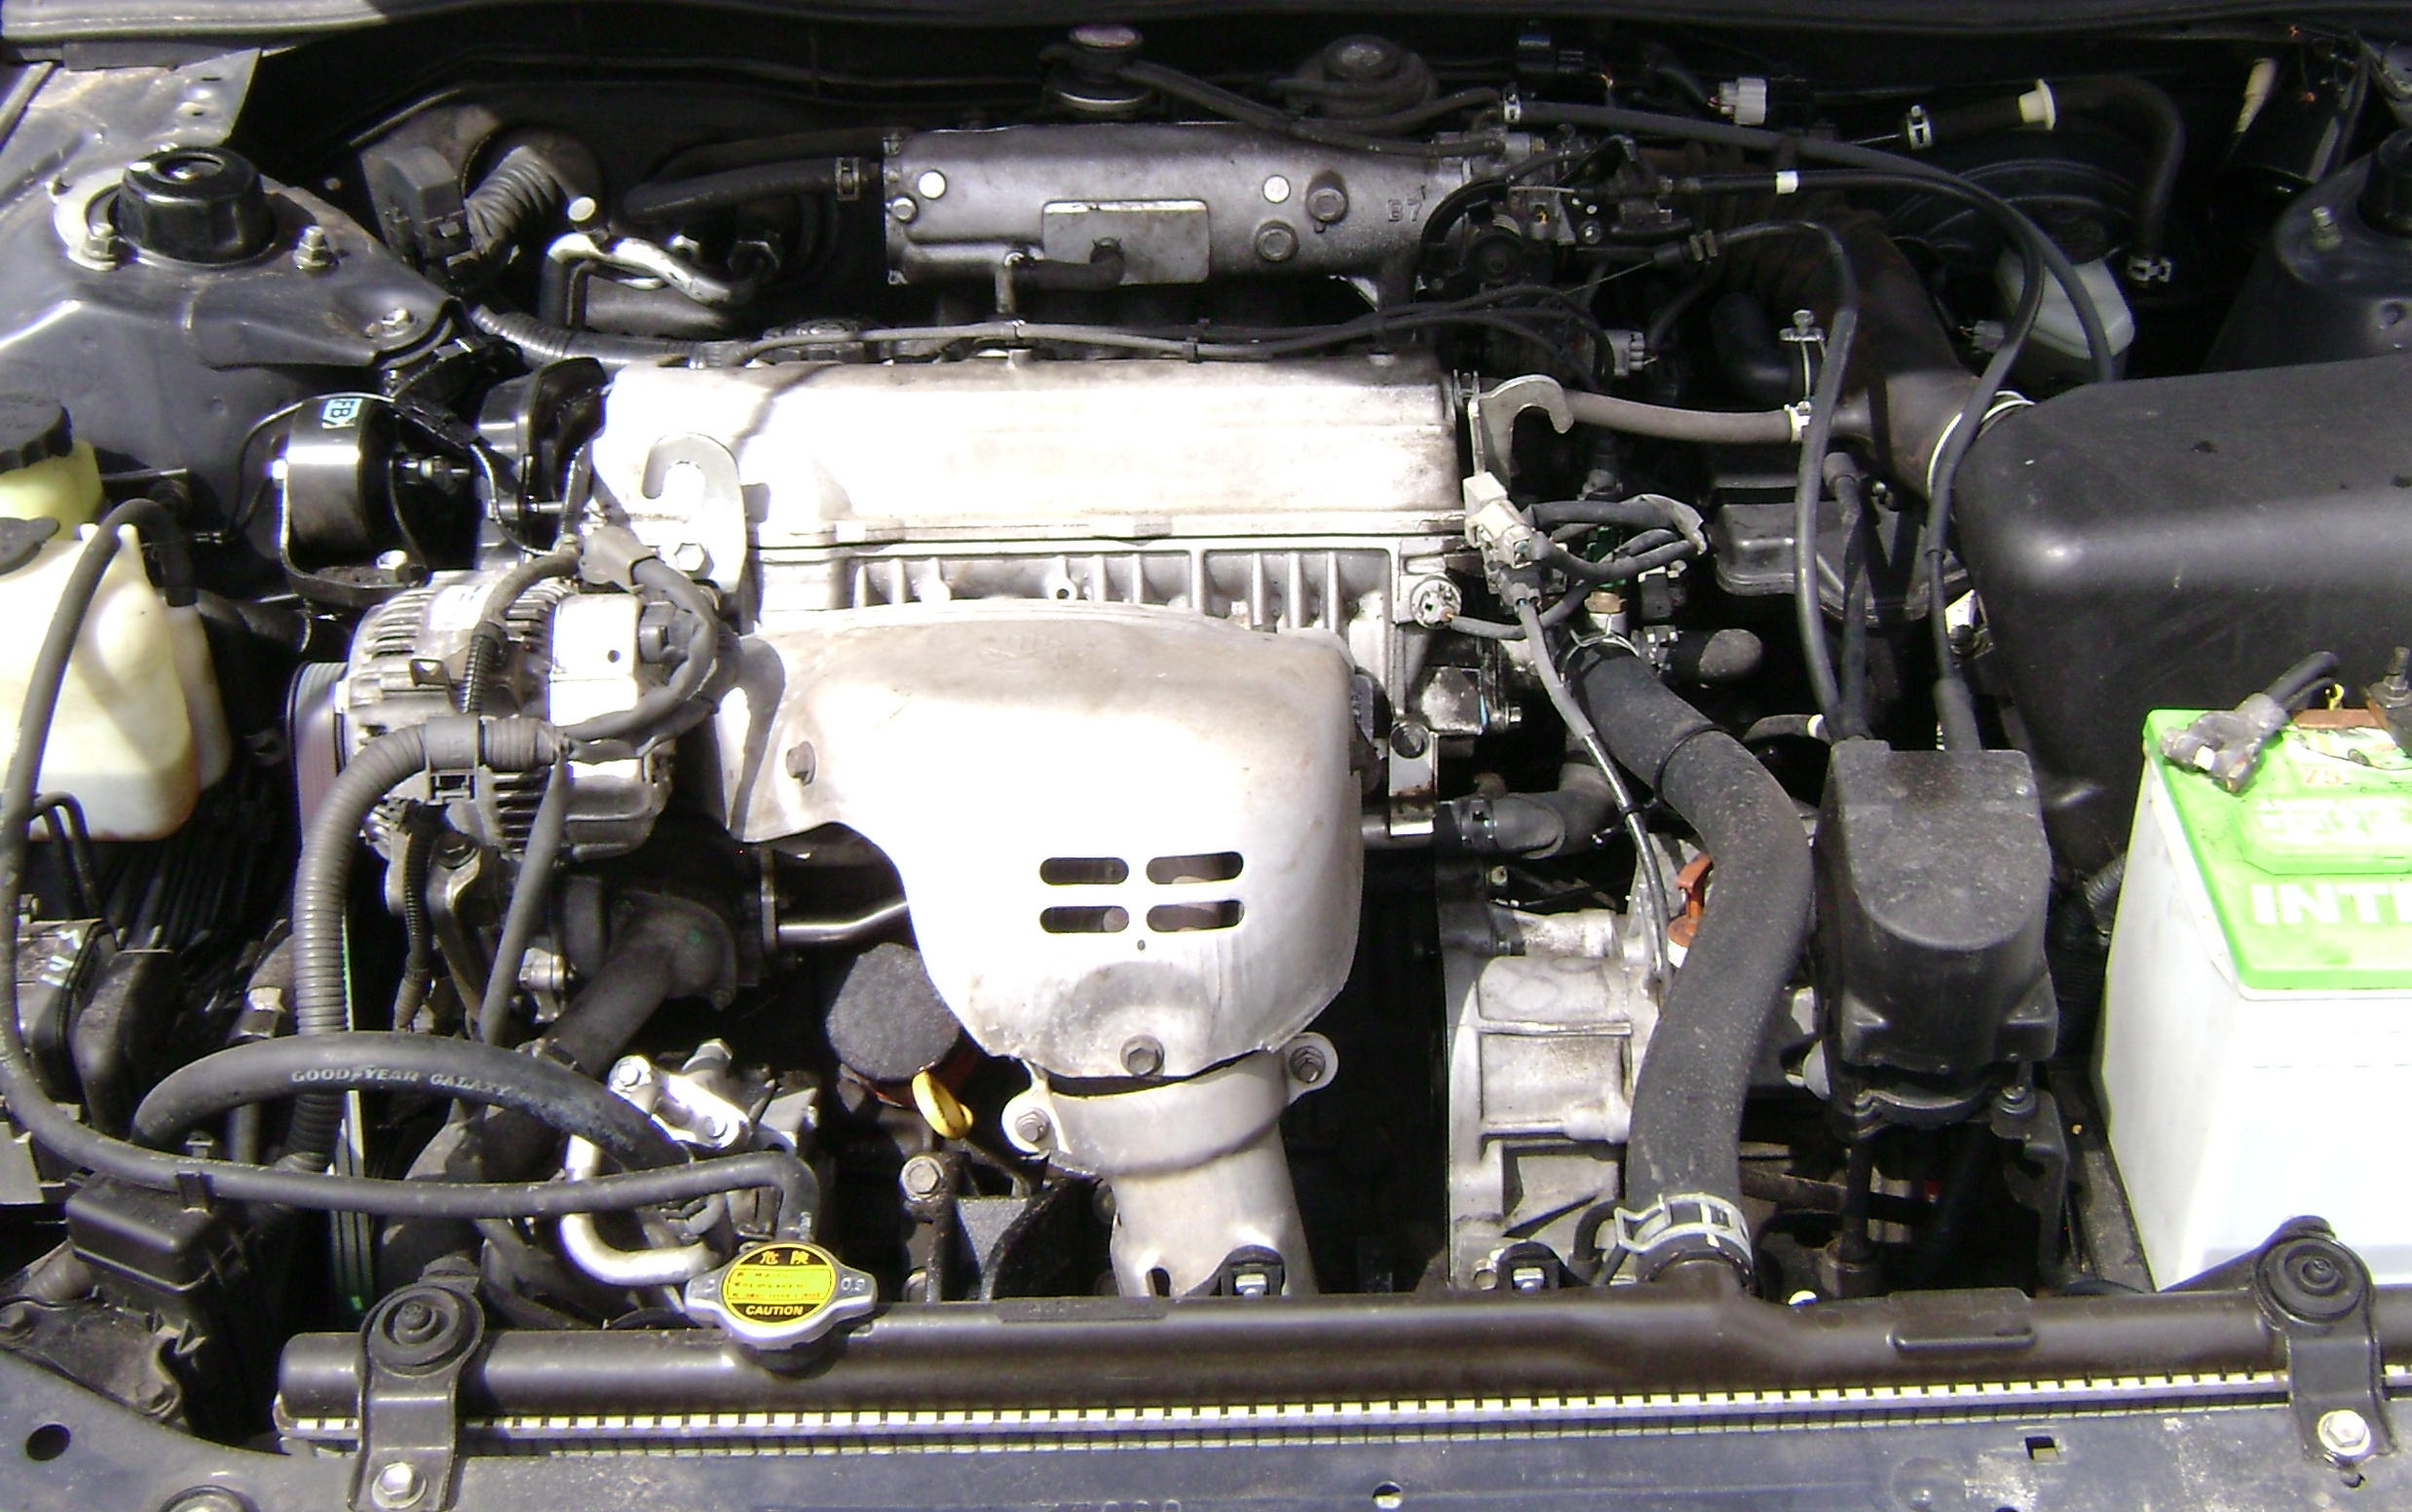 This Is A 1997 2001 Camry Engine.